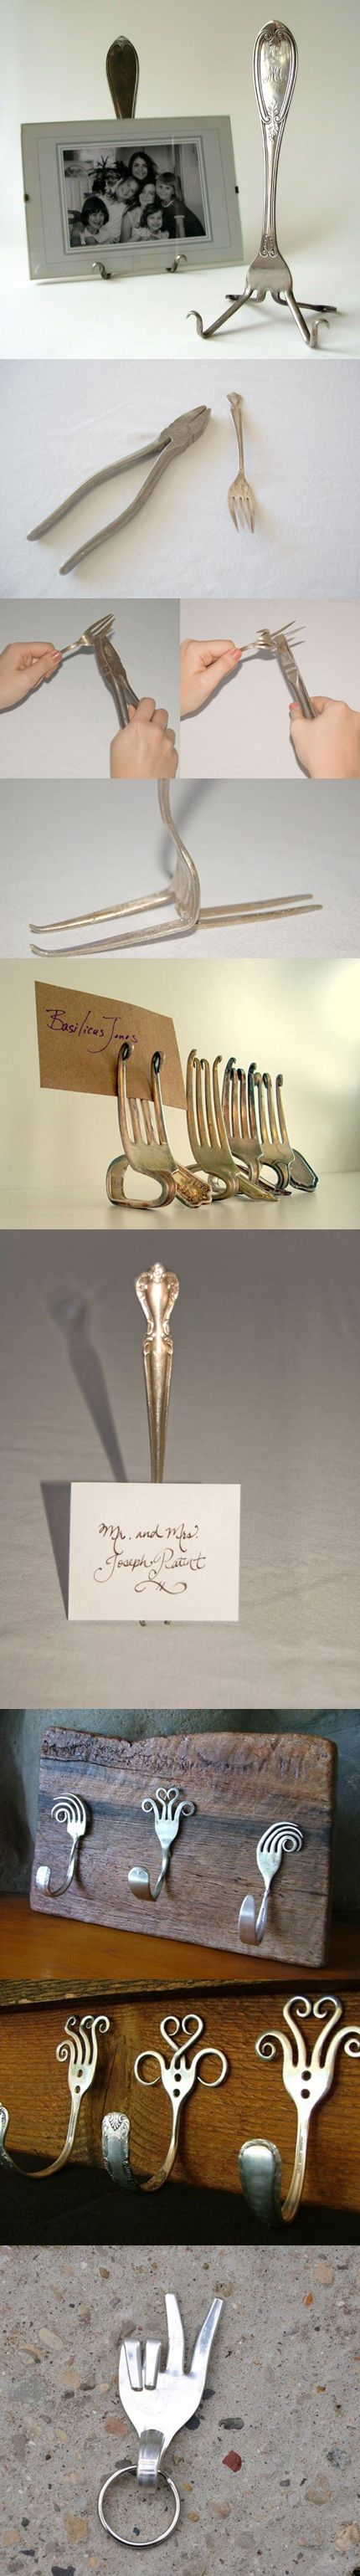 DIY Fork crafts